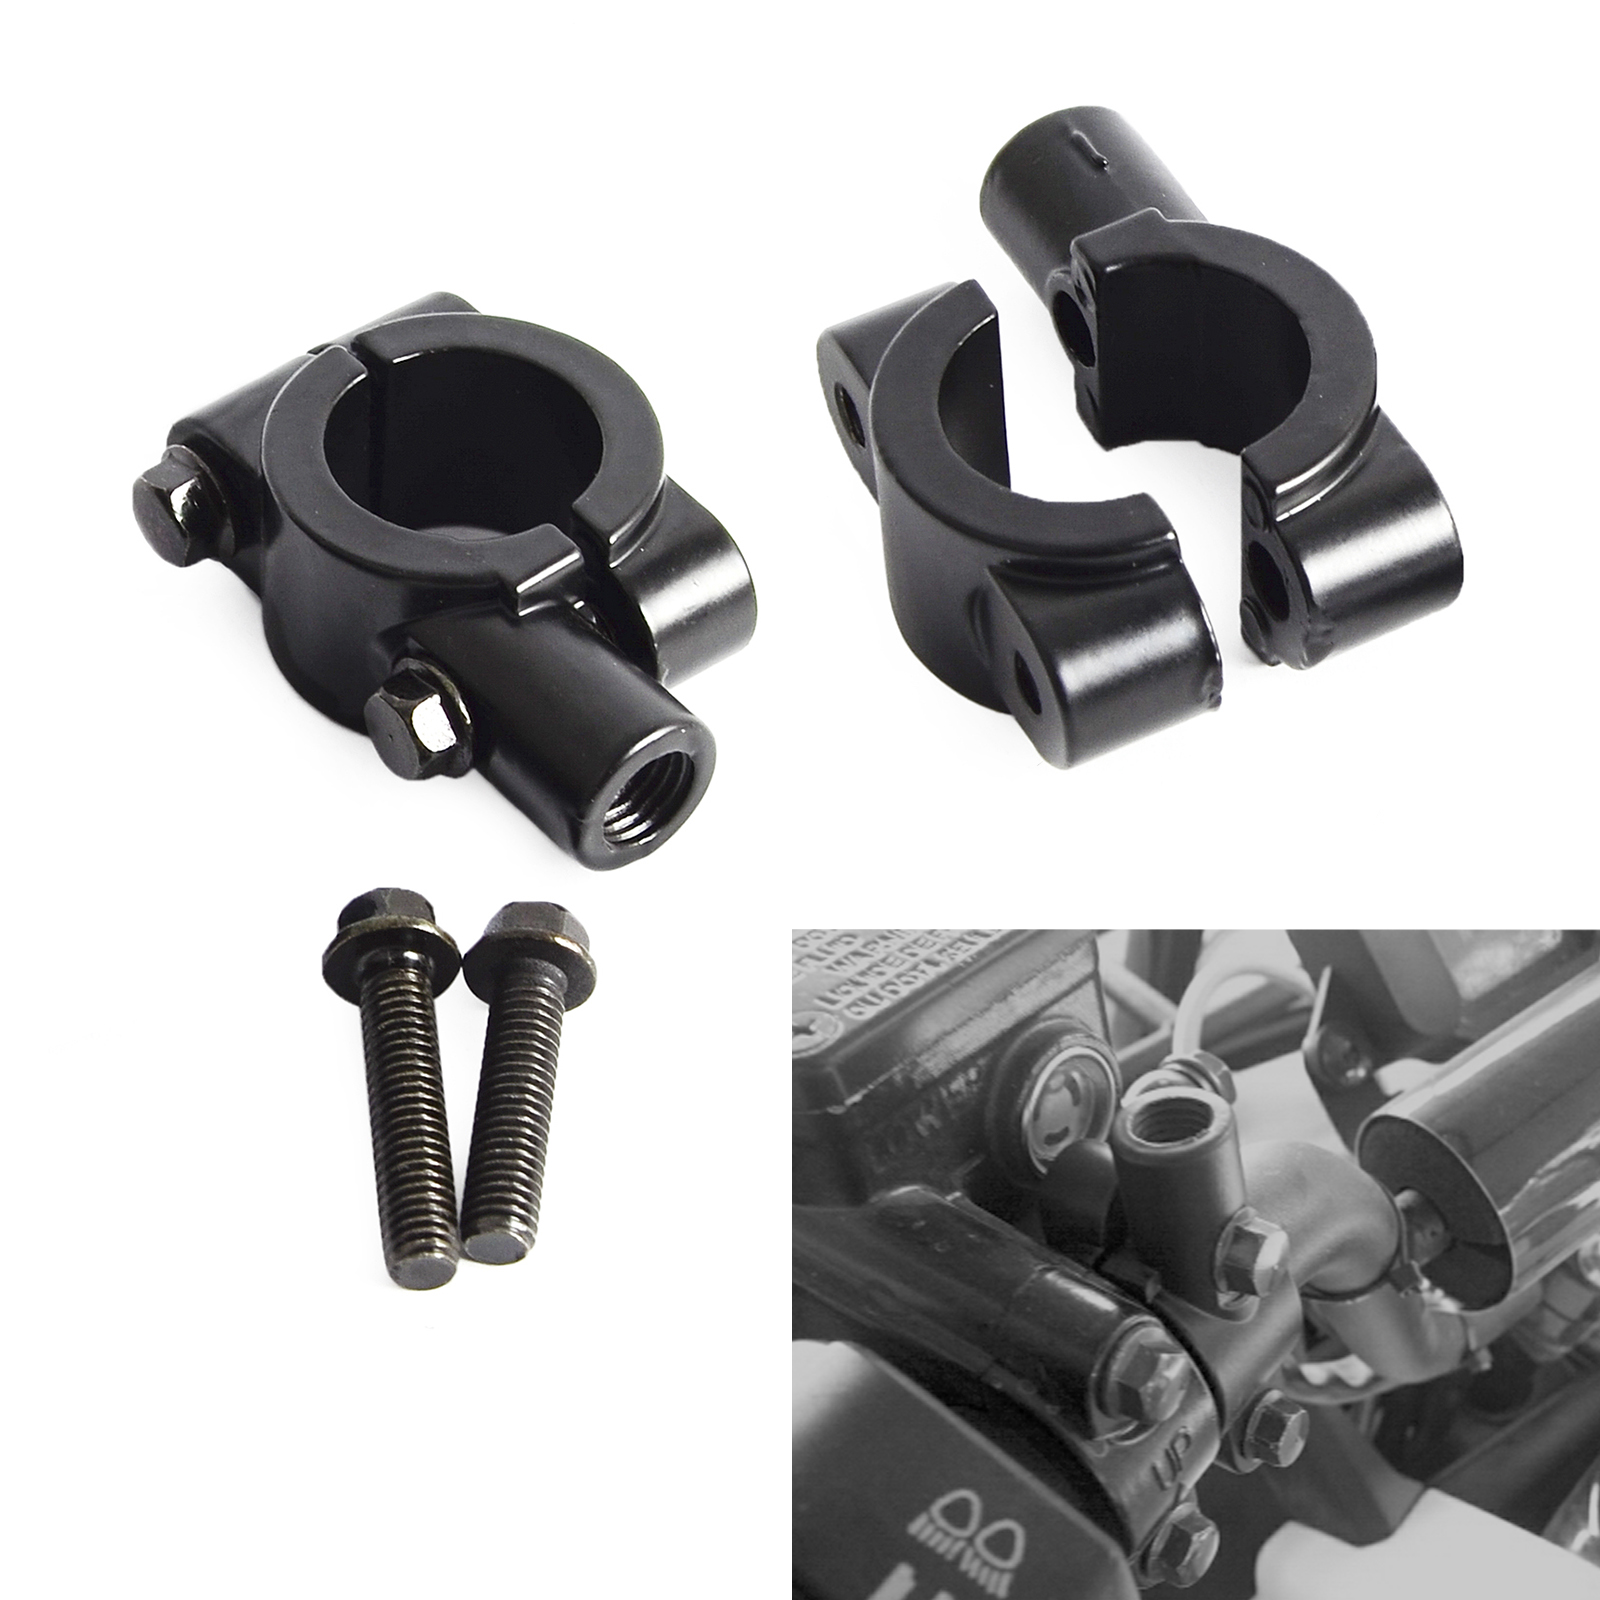 "Moto 7/8 ""(22mm) Manubrio Specchio Holder Mount Morsetto Adattatore 8/10 MM Discussione Per Honda Yamaha Harley KTM Suzuki ATV Scooter"